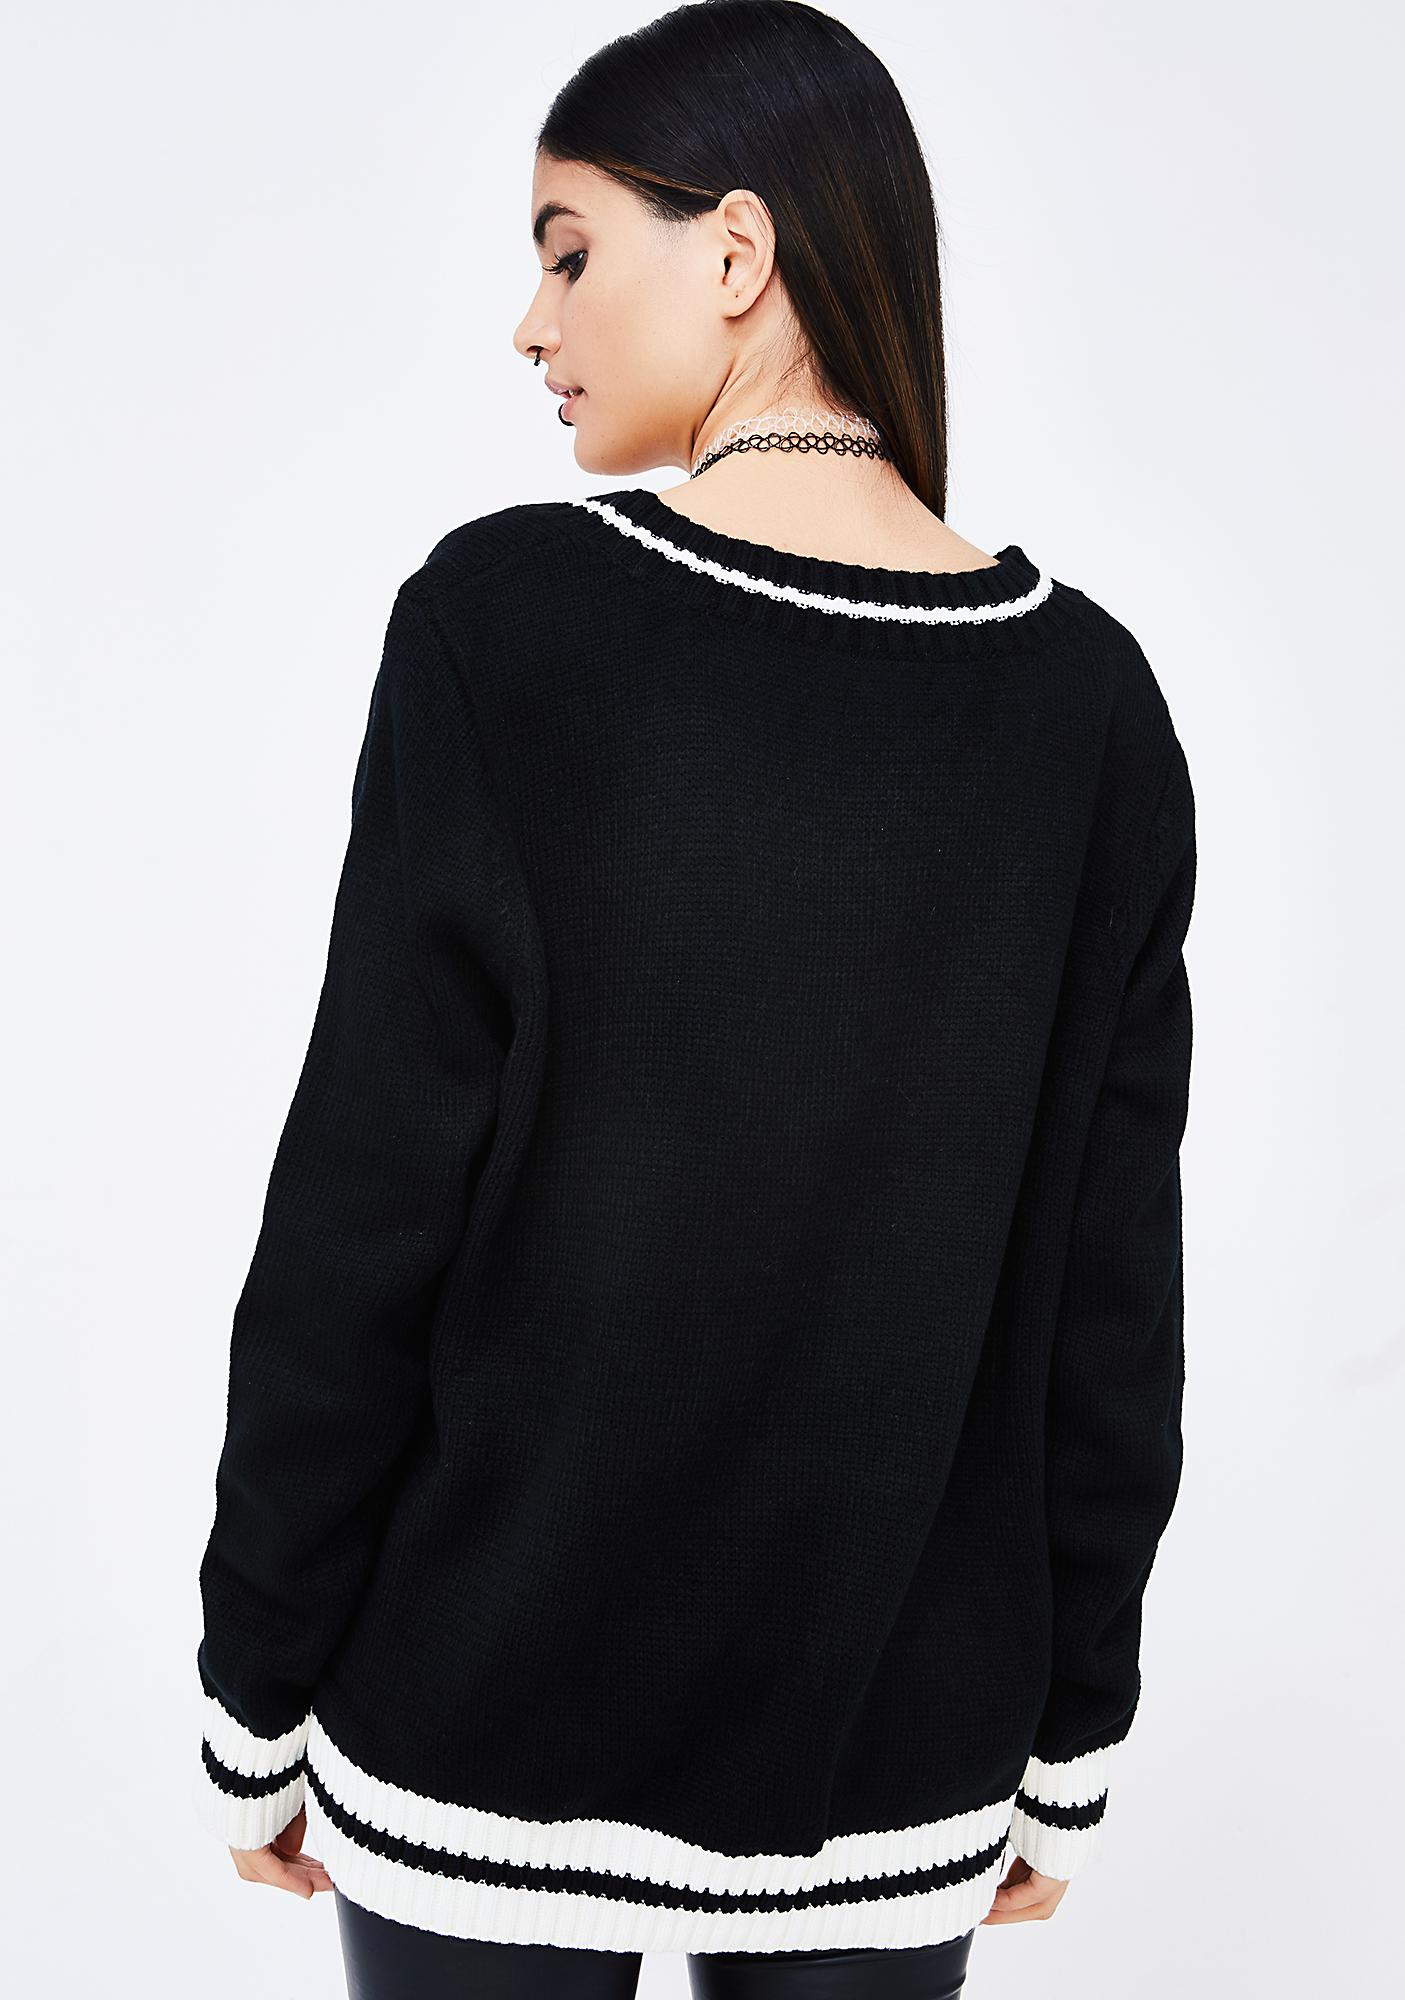 Home Body Knit Sweater